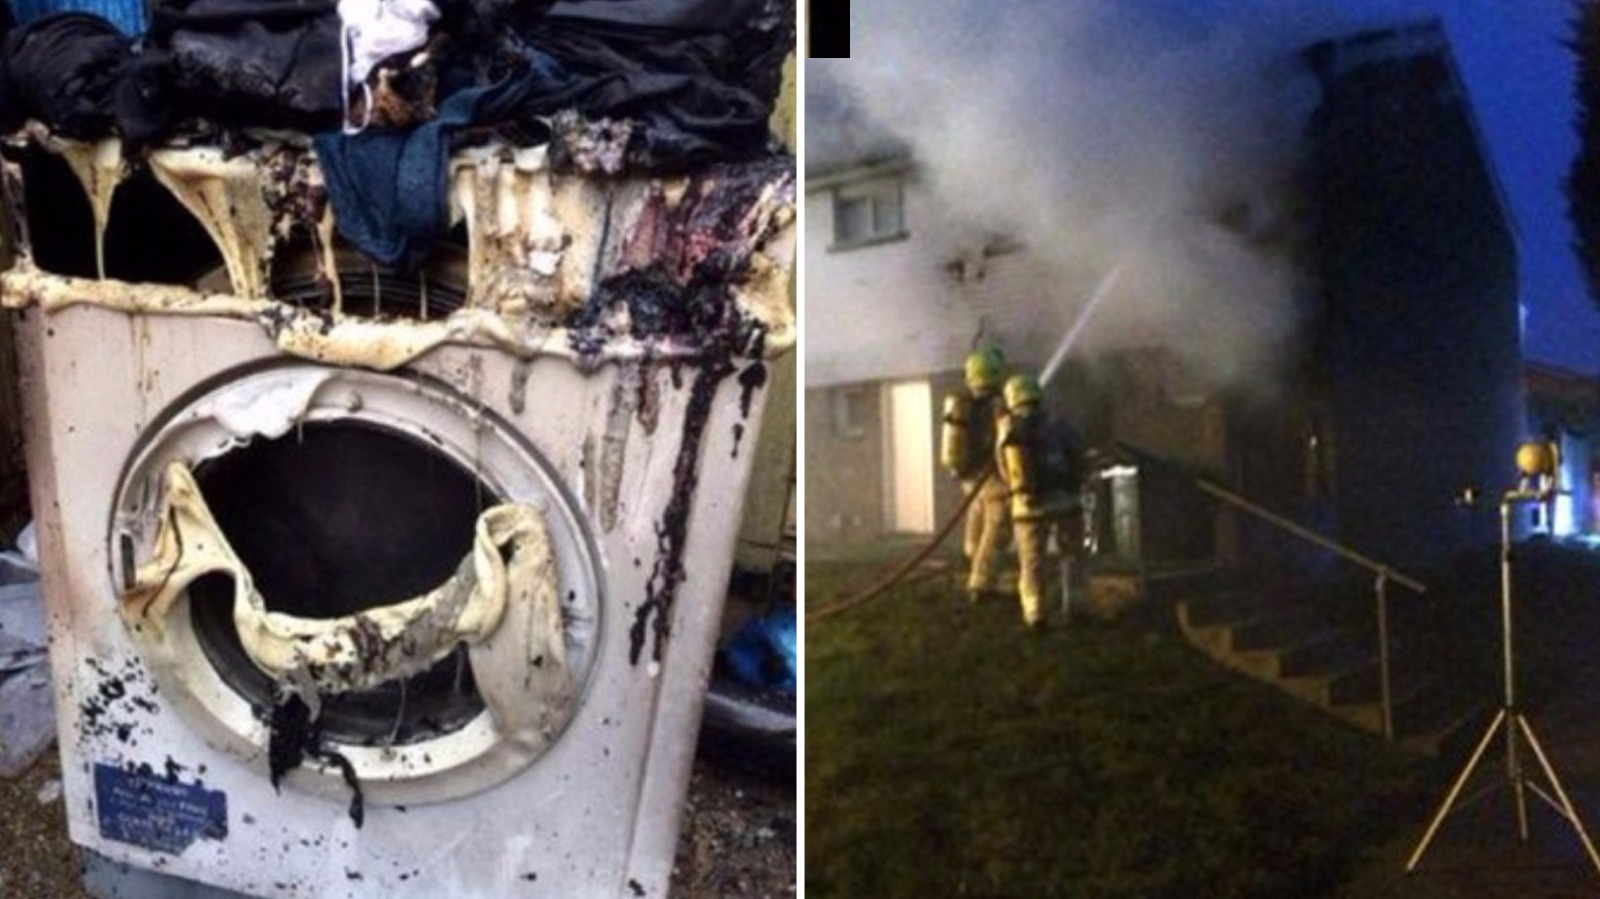 Creda Tumble Dryer Recall >> Plan for automatic recalls after tumble dryer fires - ITV News